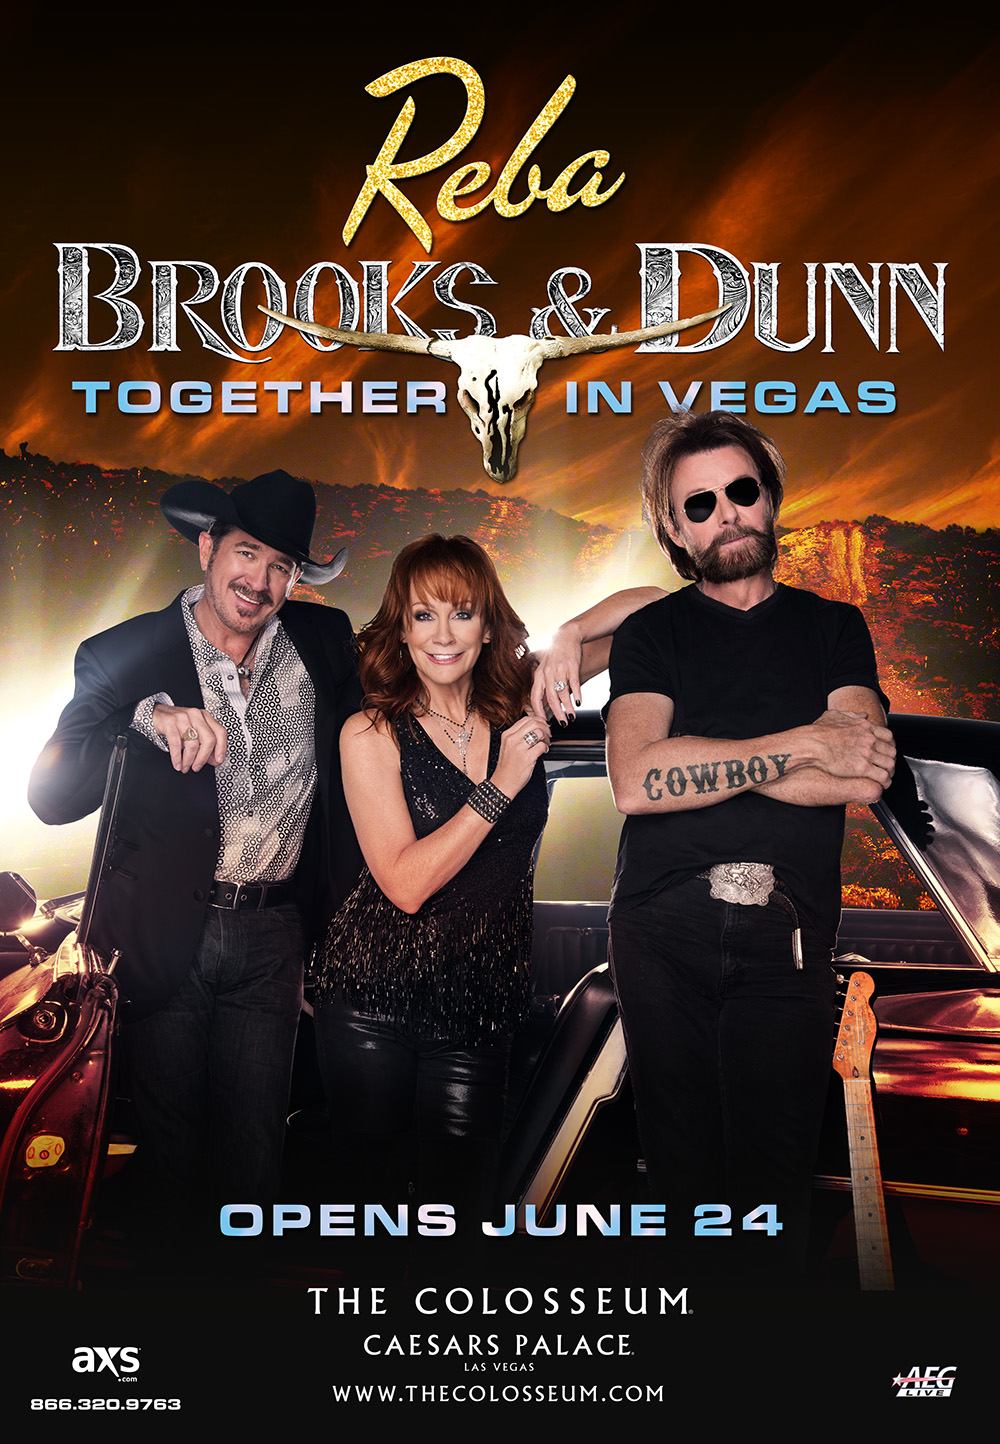 reba brooks and dunn admat final layered copy.jpg